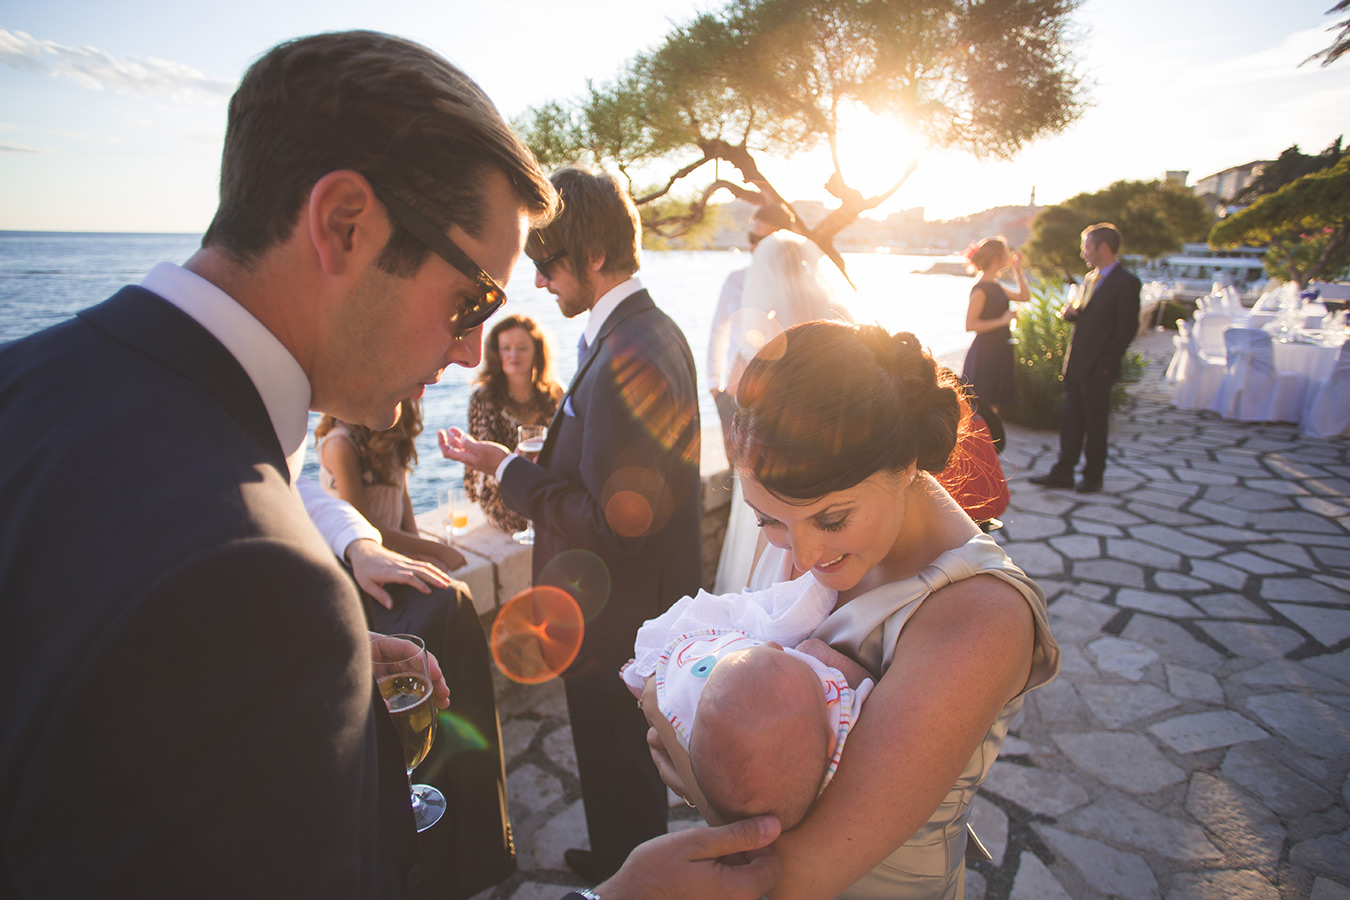 One of a set of images taken at this chic destination Wedding of Jenna & Nick. The stylish old town of Dubrovnik, Croatia.  The guests enjoy the warm evening.  Photography by Matt Porteous